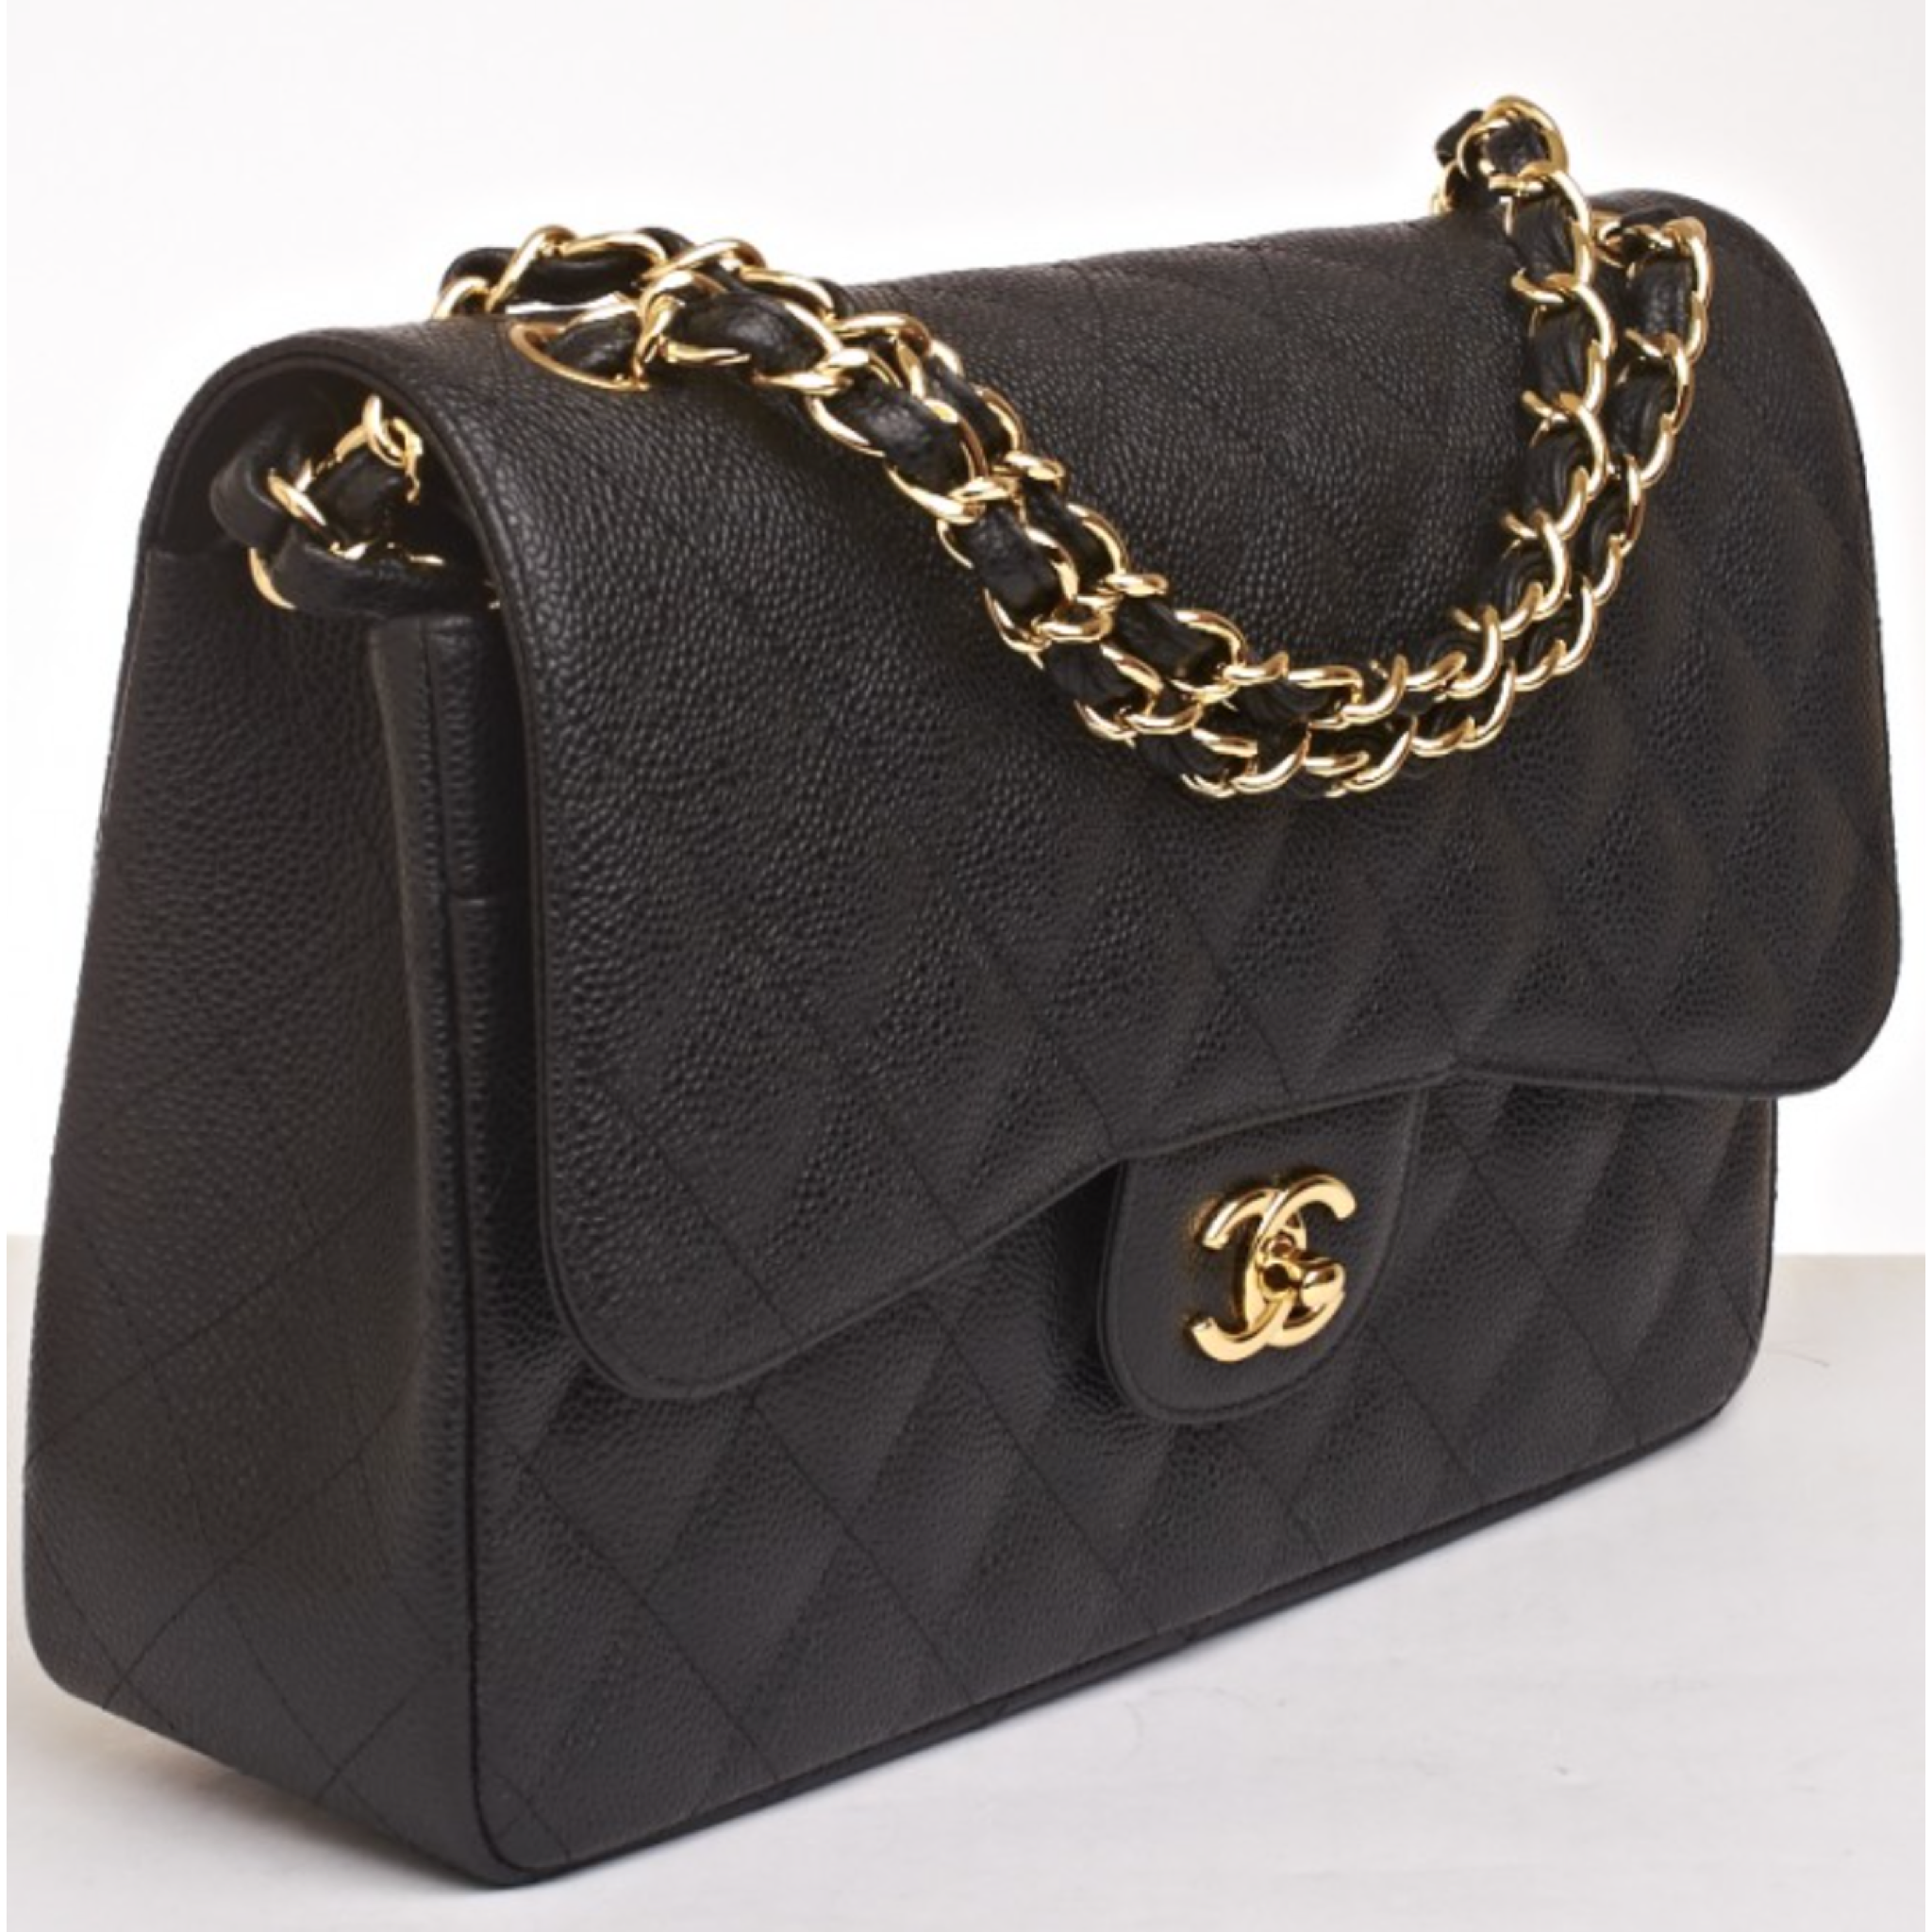 Chanel 2 55 Jumbo Flap Bag Replica